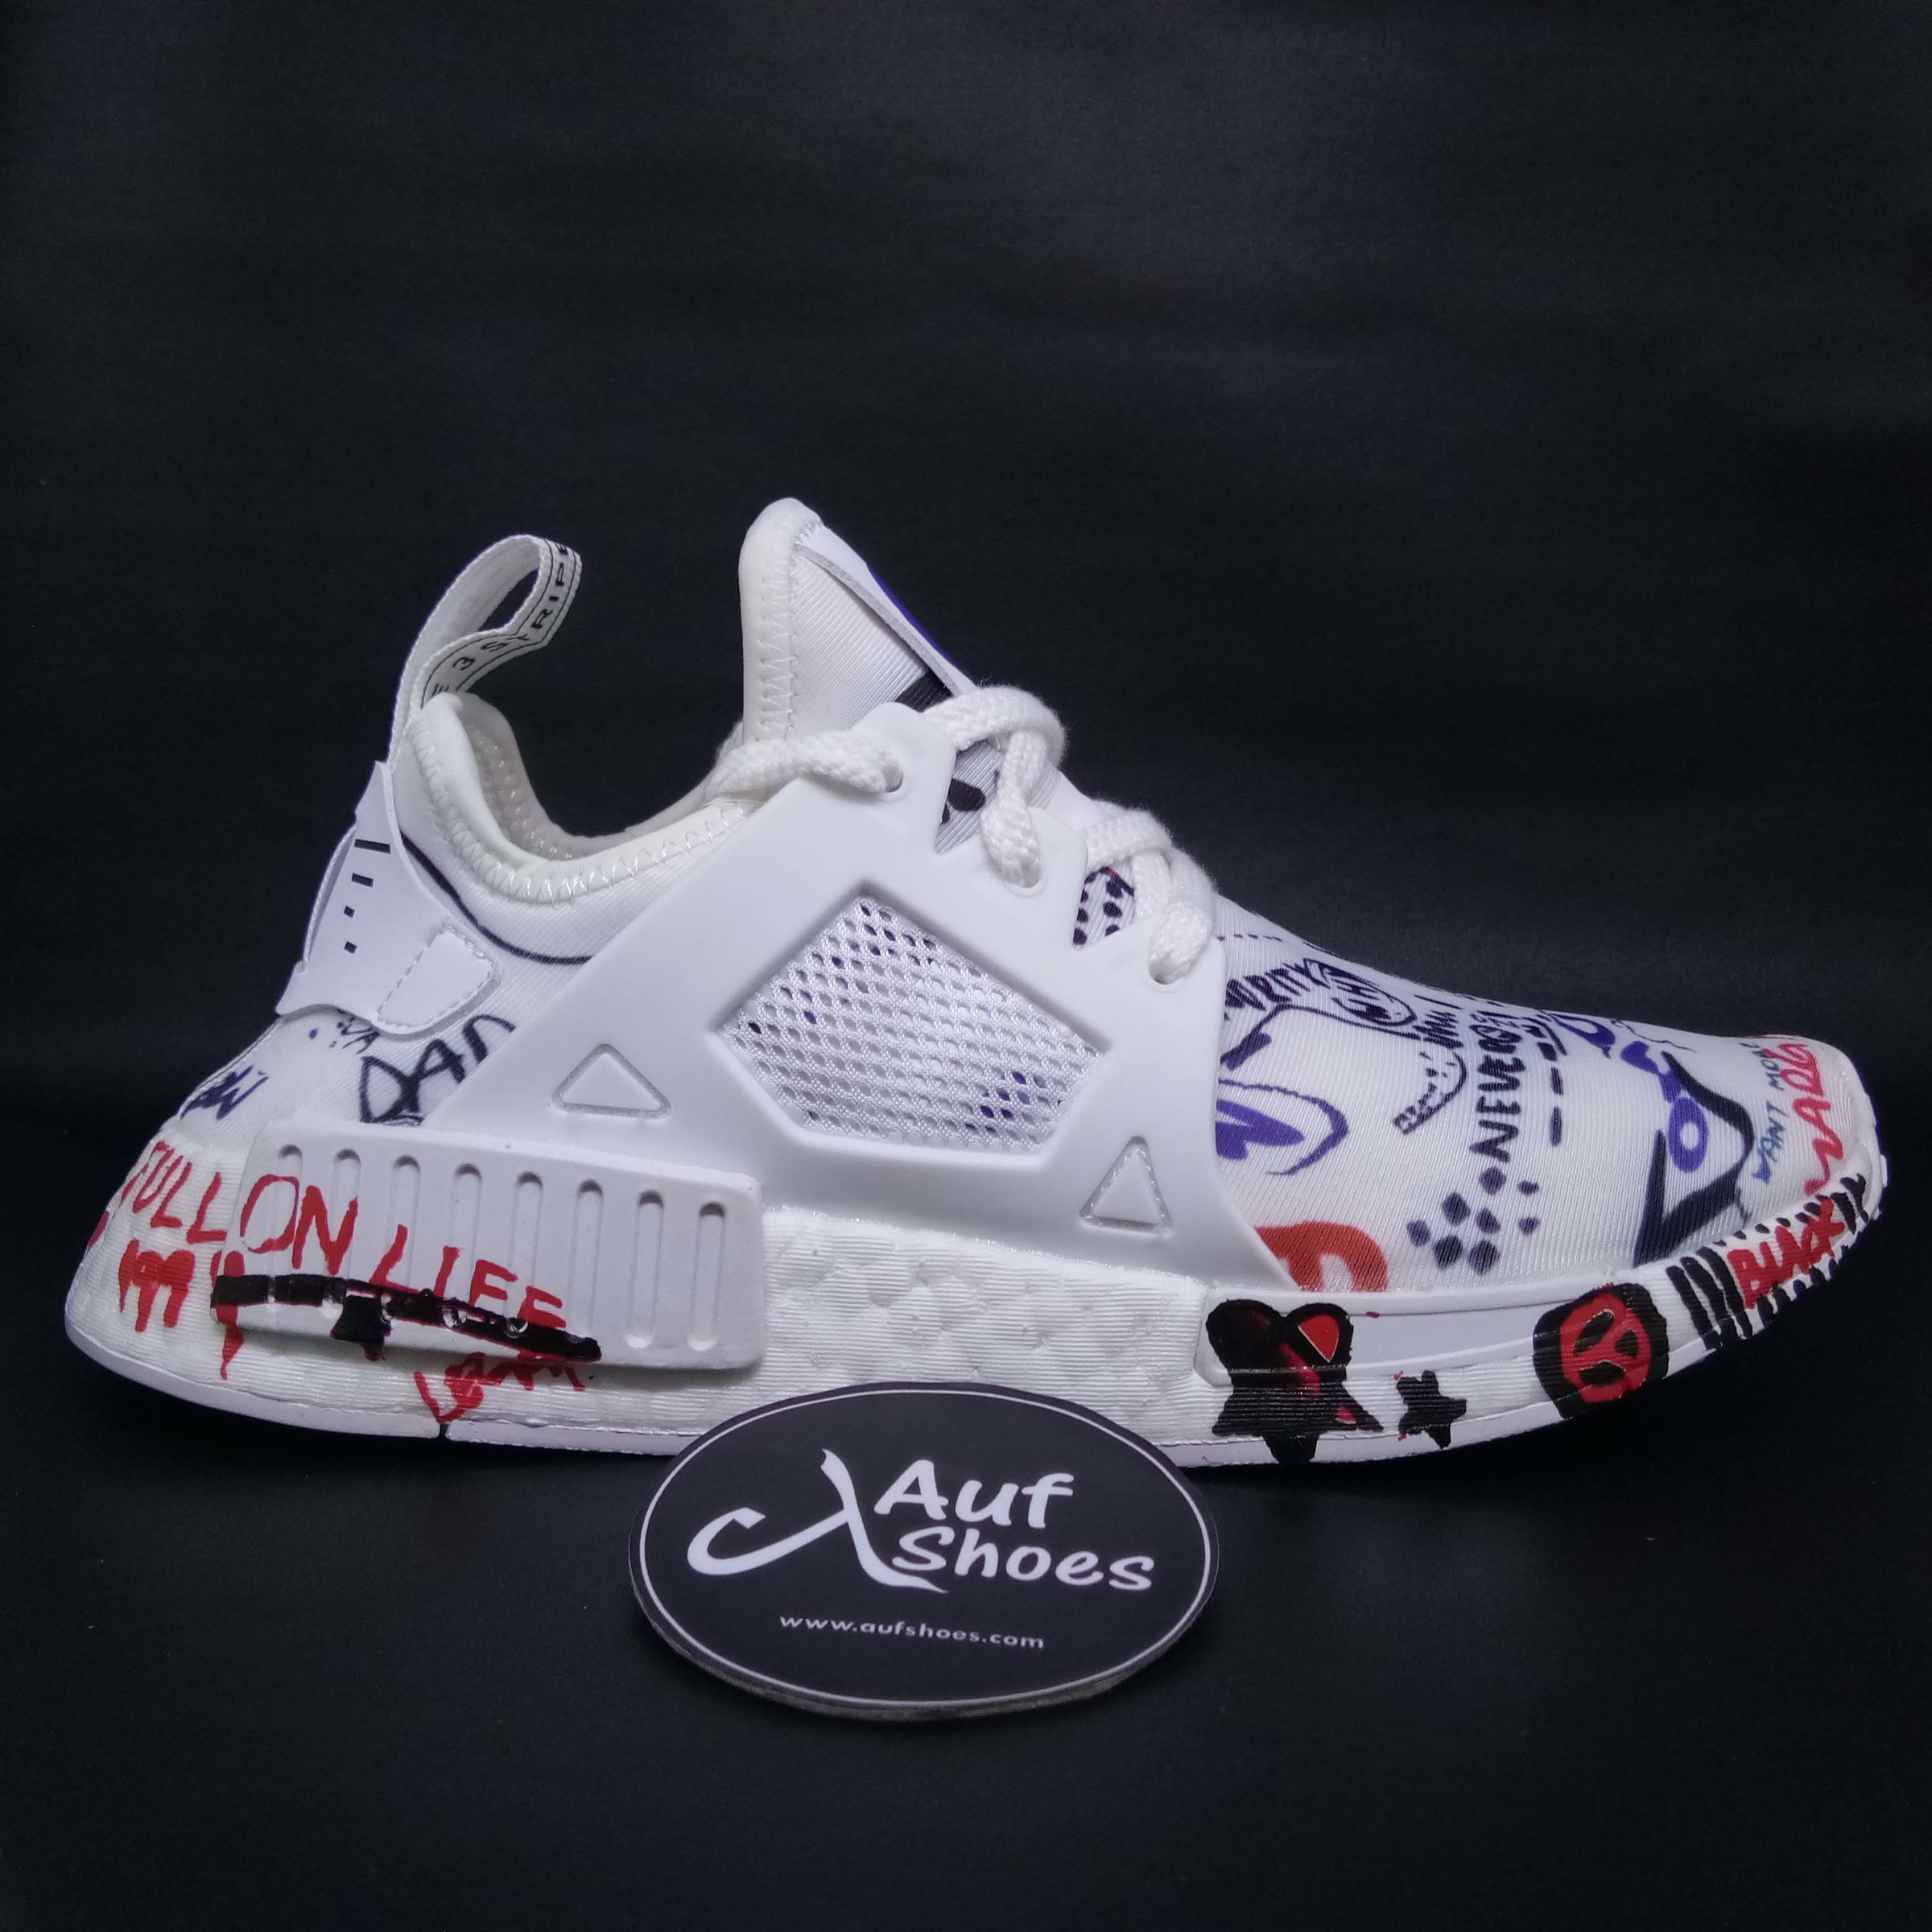 095513fc2ea6d Beranda › VETEMENTS X Ads NMD XR1 BOOST BA7766. IMG 20180330 150957.jpg